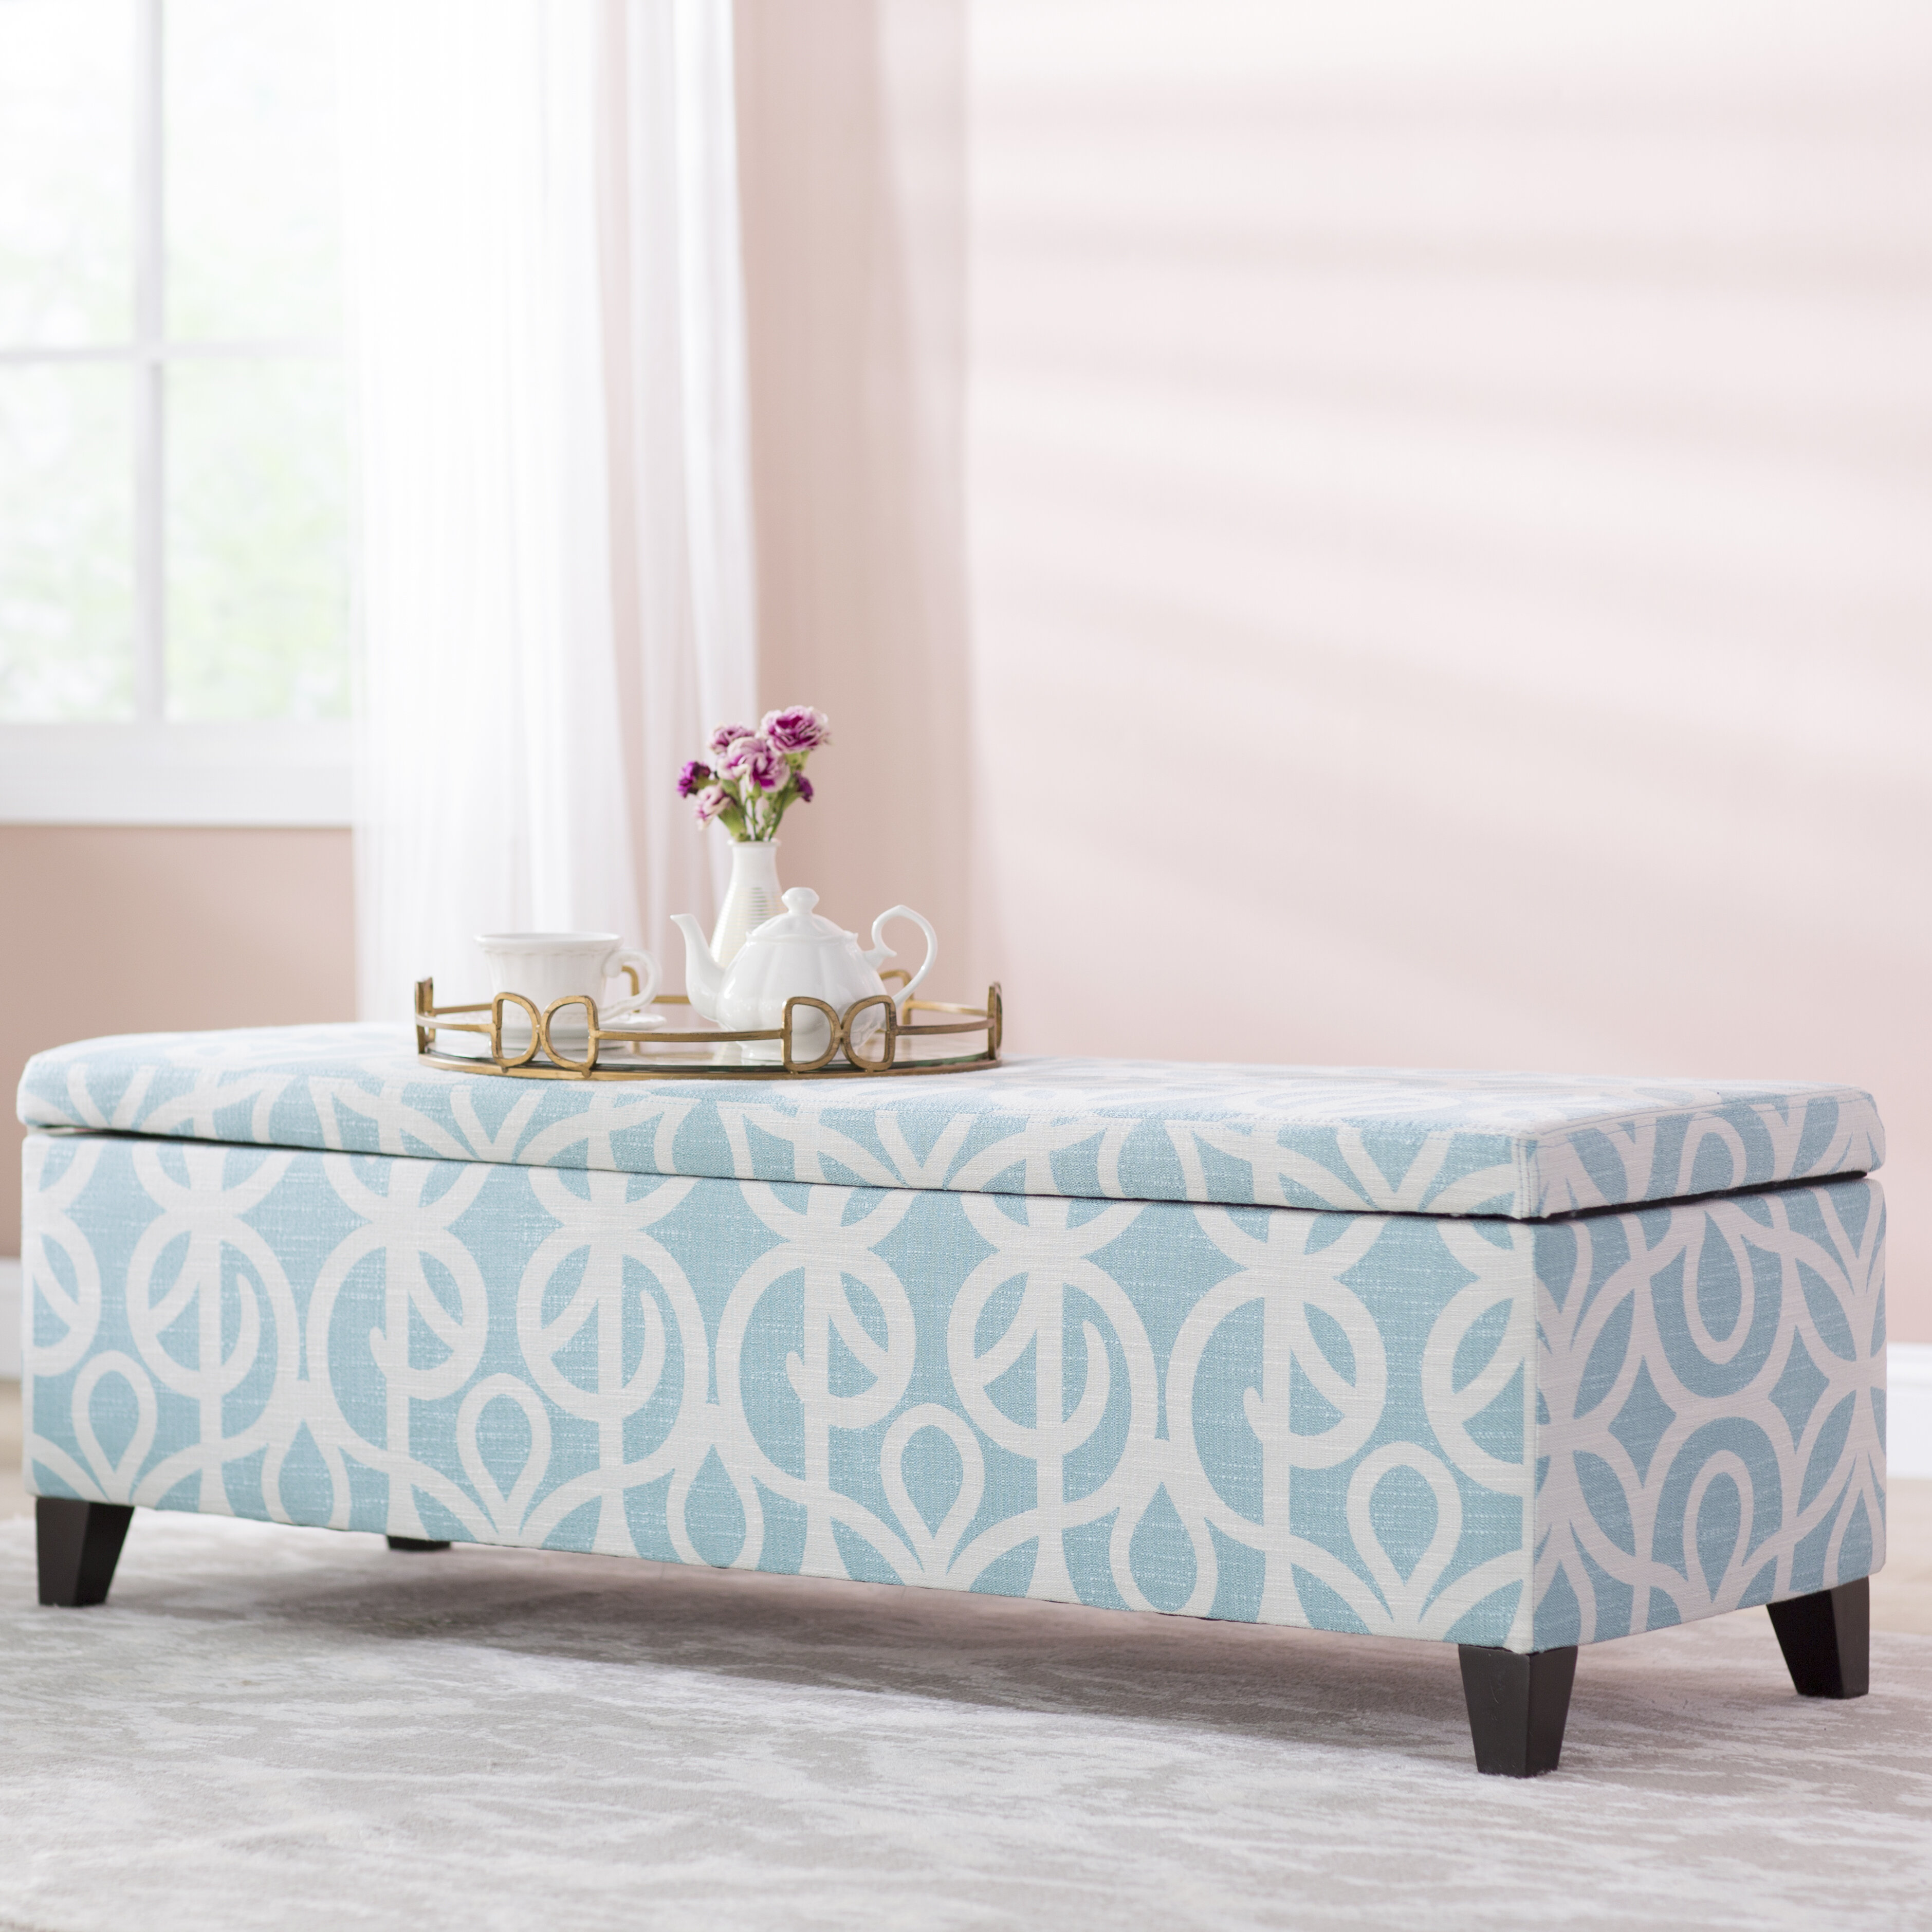 Charlton Home Adair Upholstered Storage Bench & Reviews | Wayfair